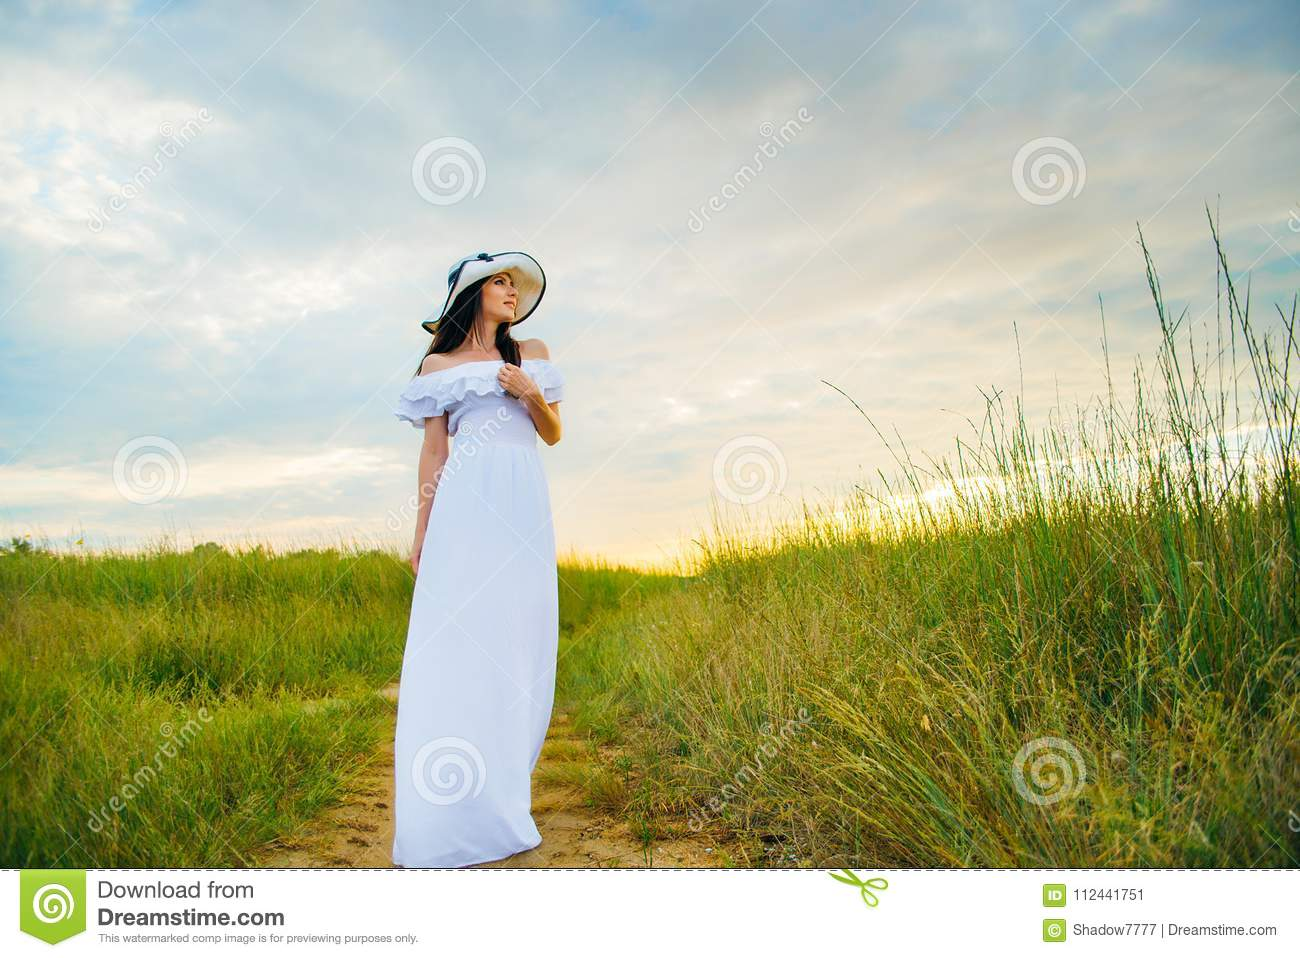 woman in a white dress on an stock image - image of beautiful, dress